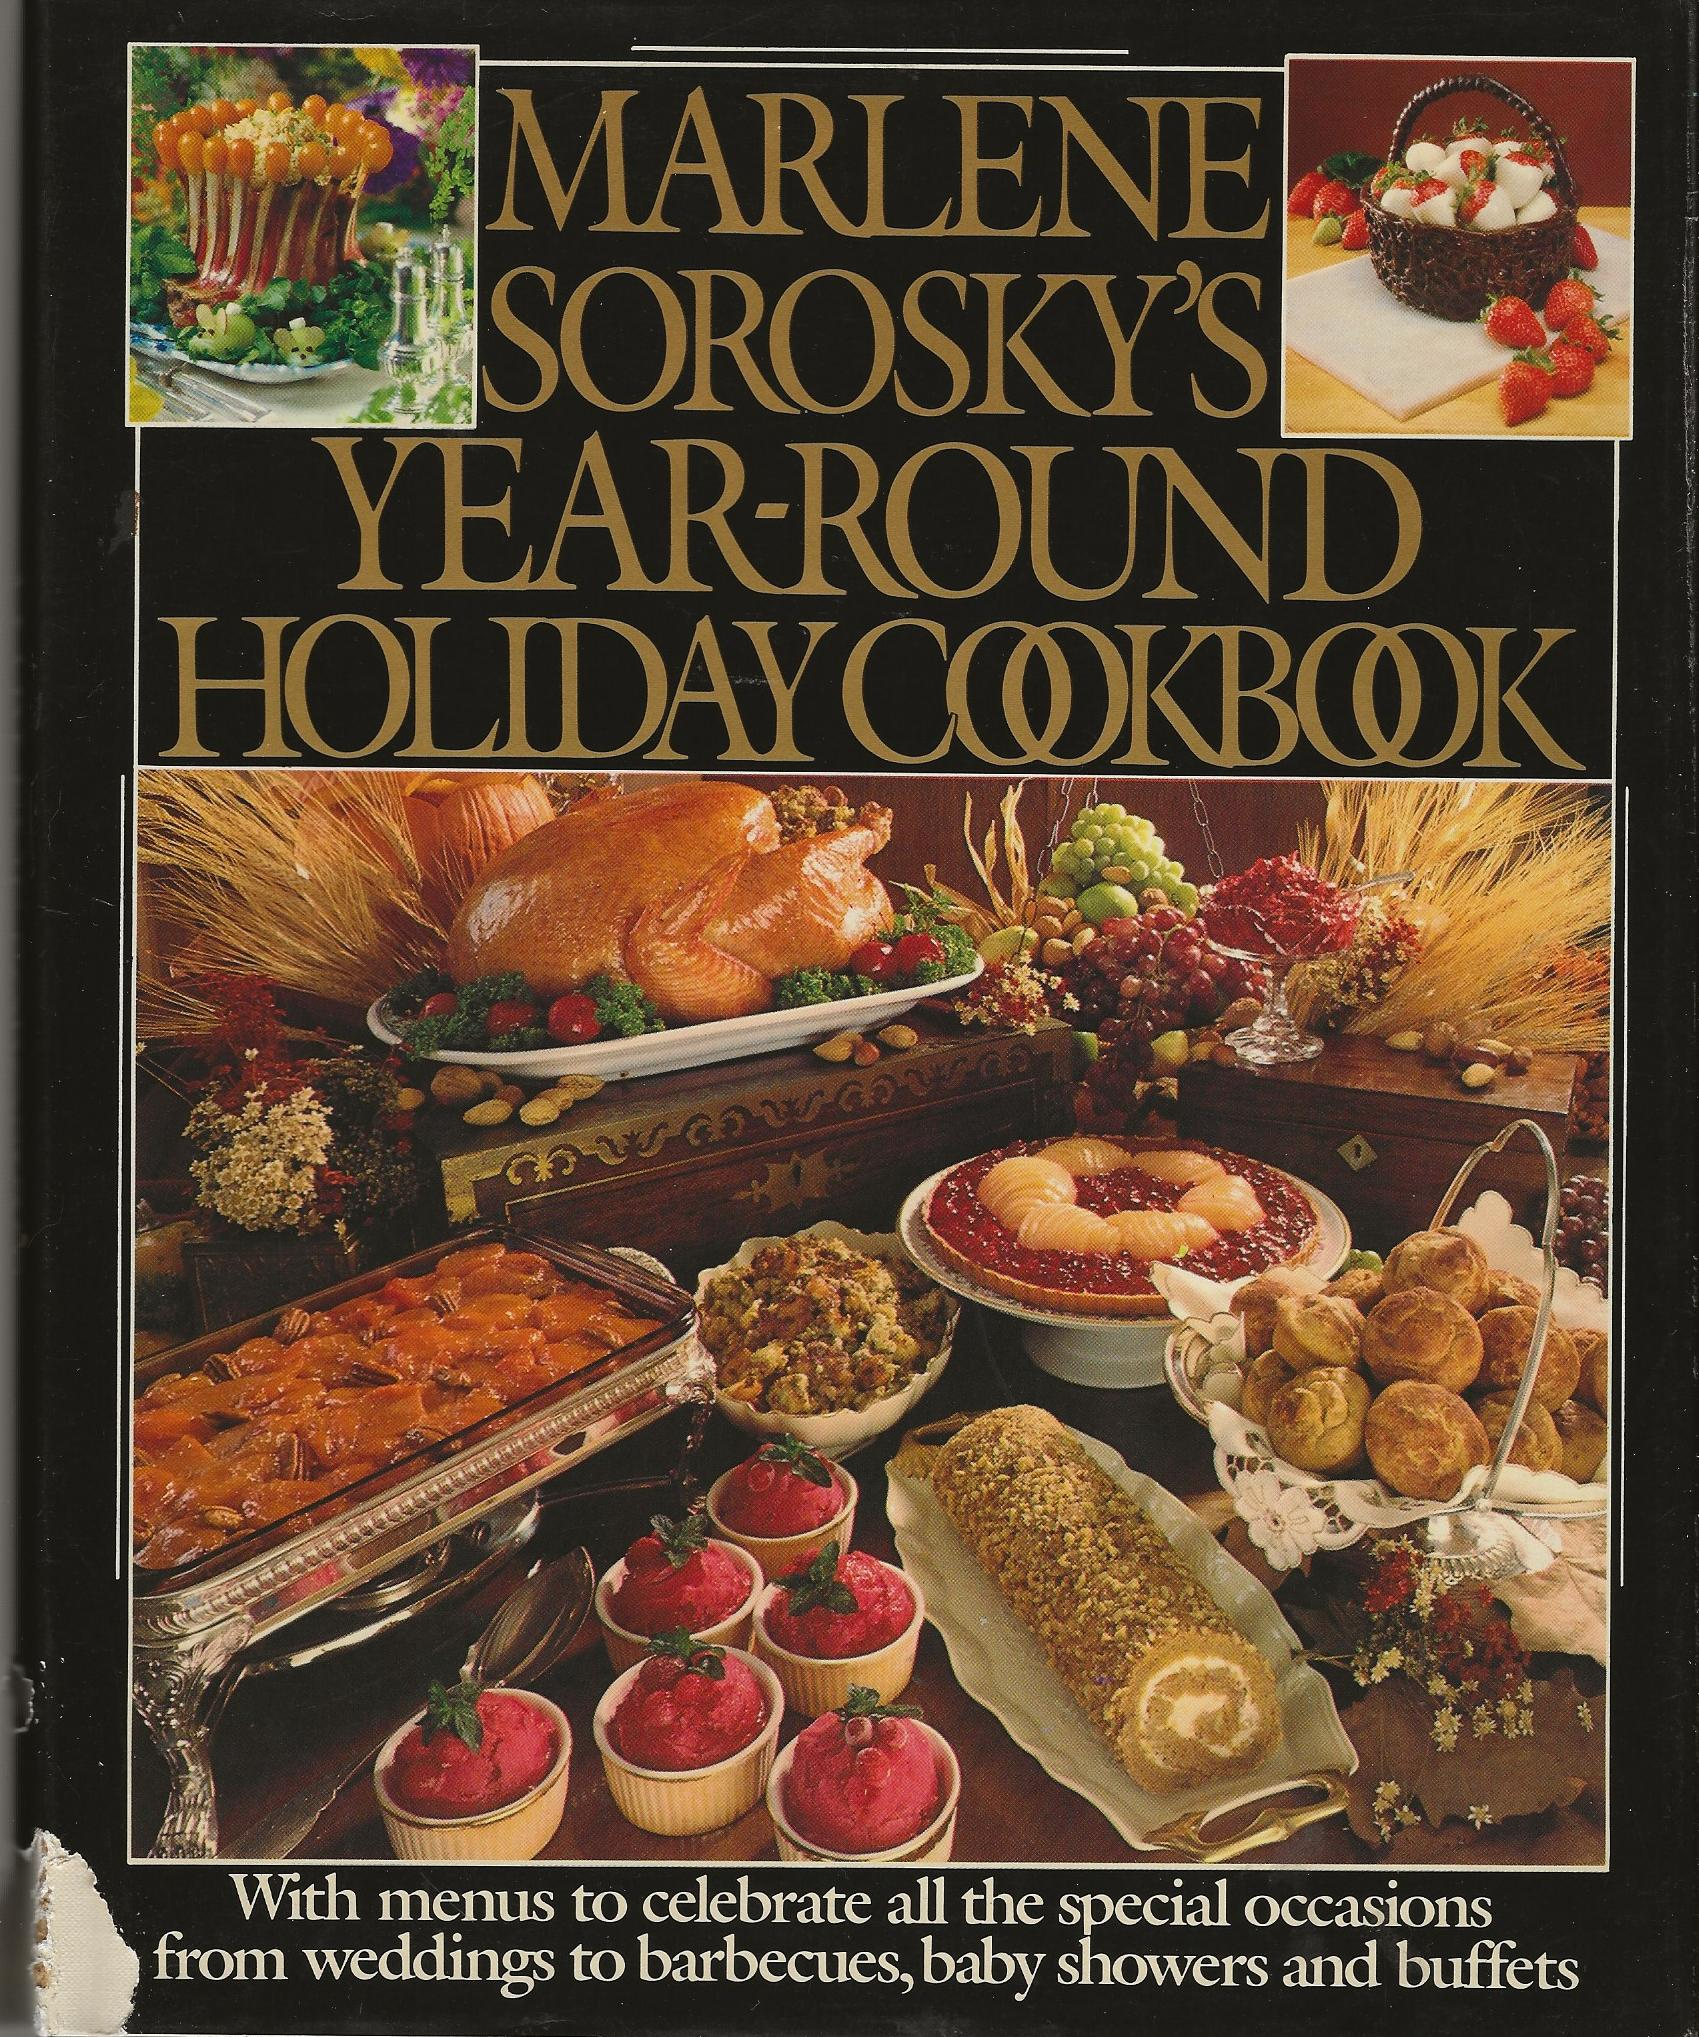 Image for MARLENE SOROSKY'S YEAR-ROUND HOLIDAY COOKBOOK